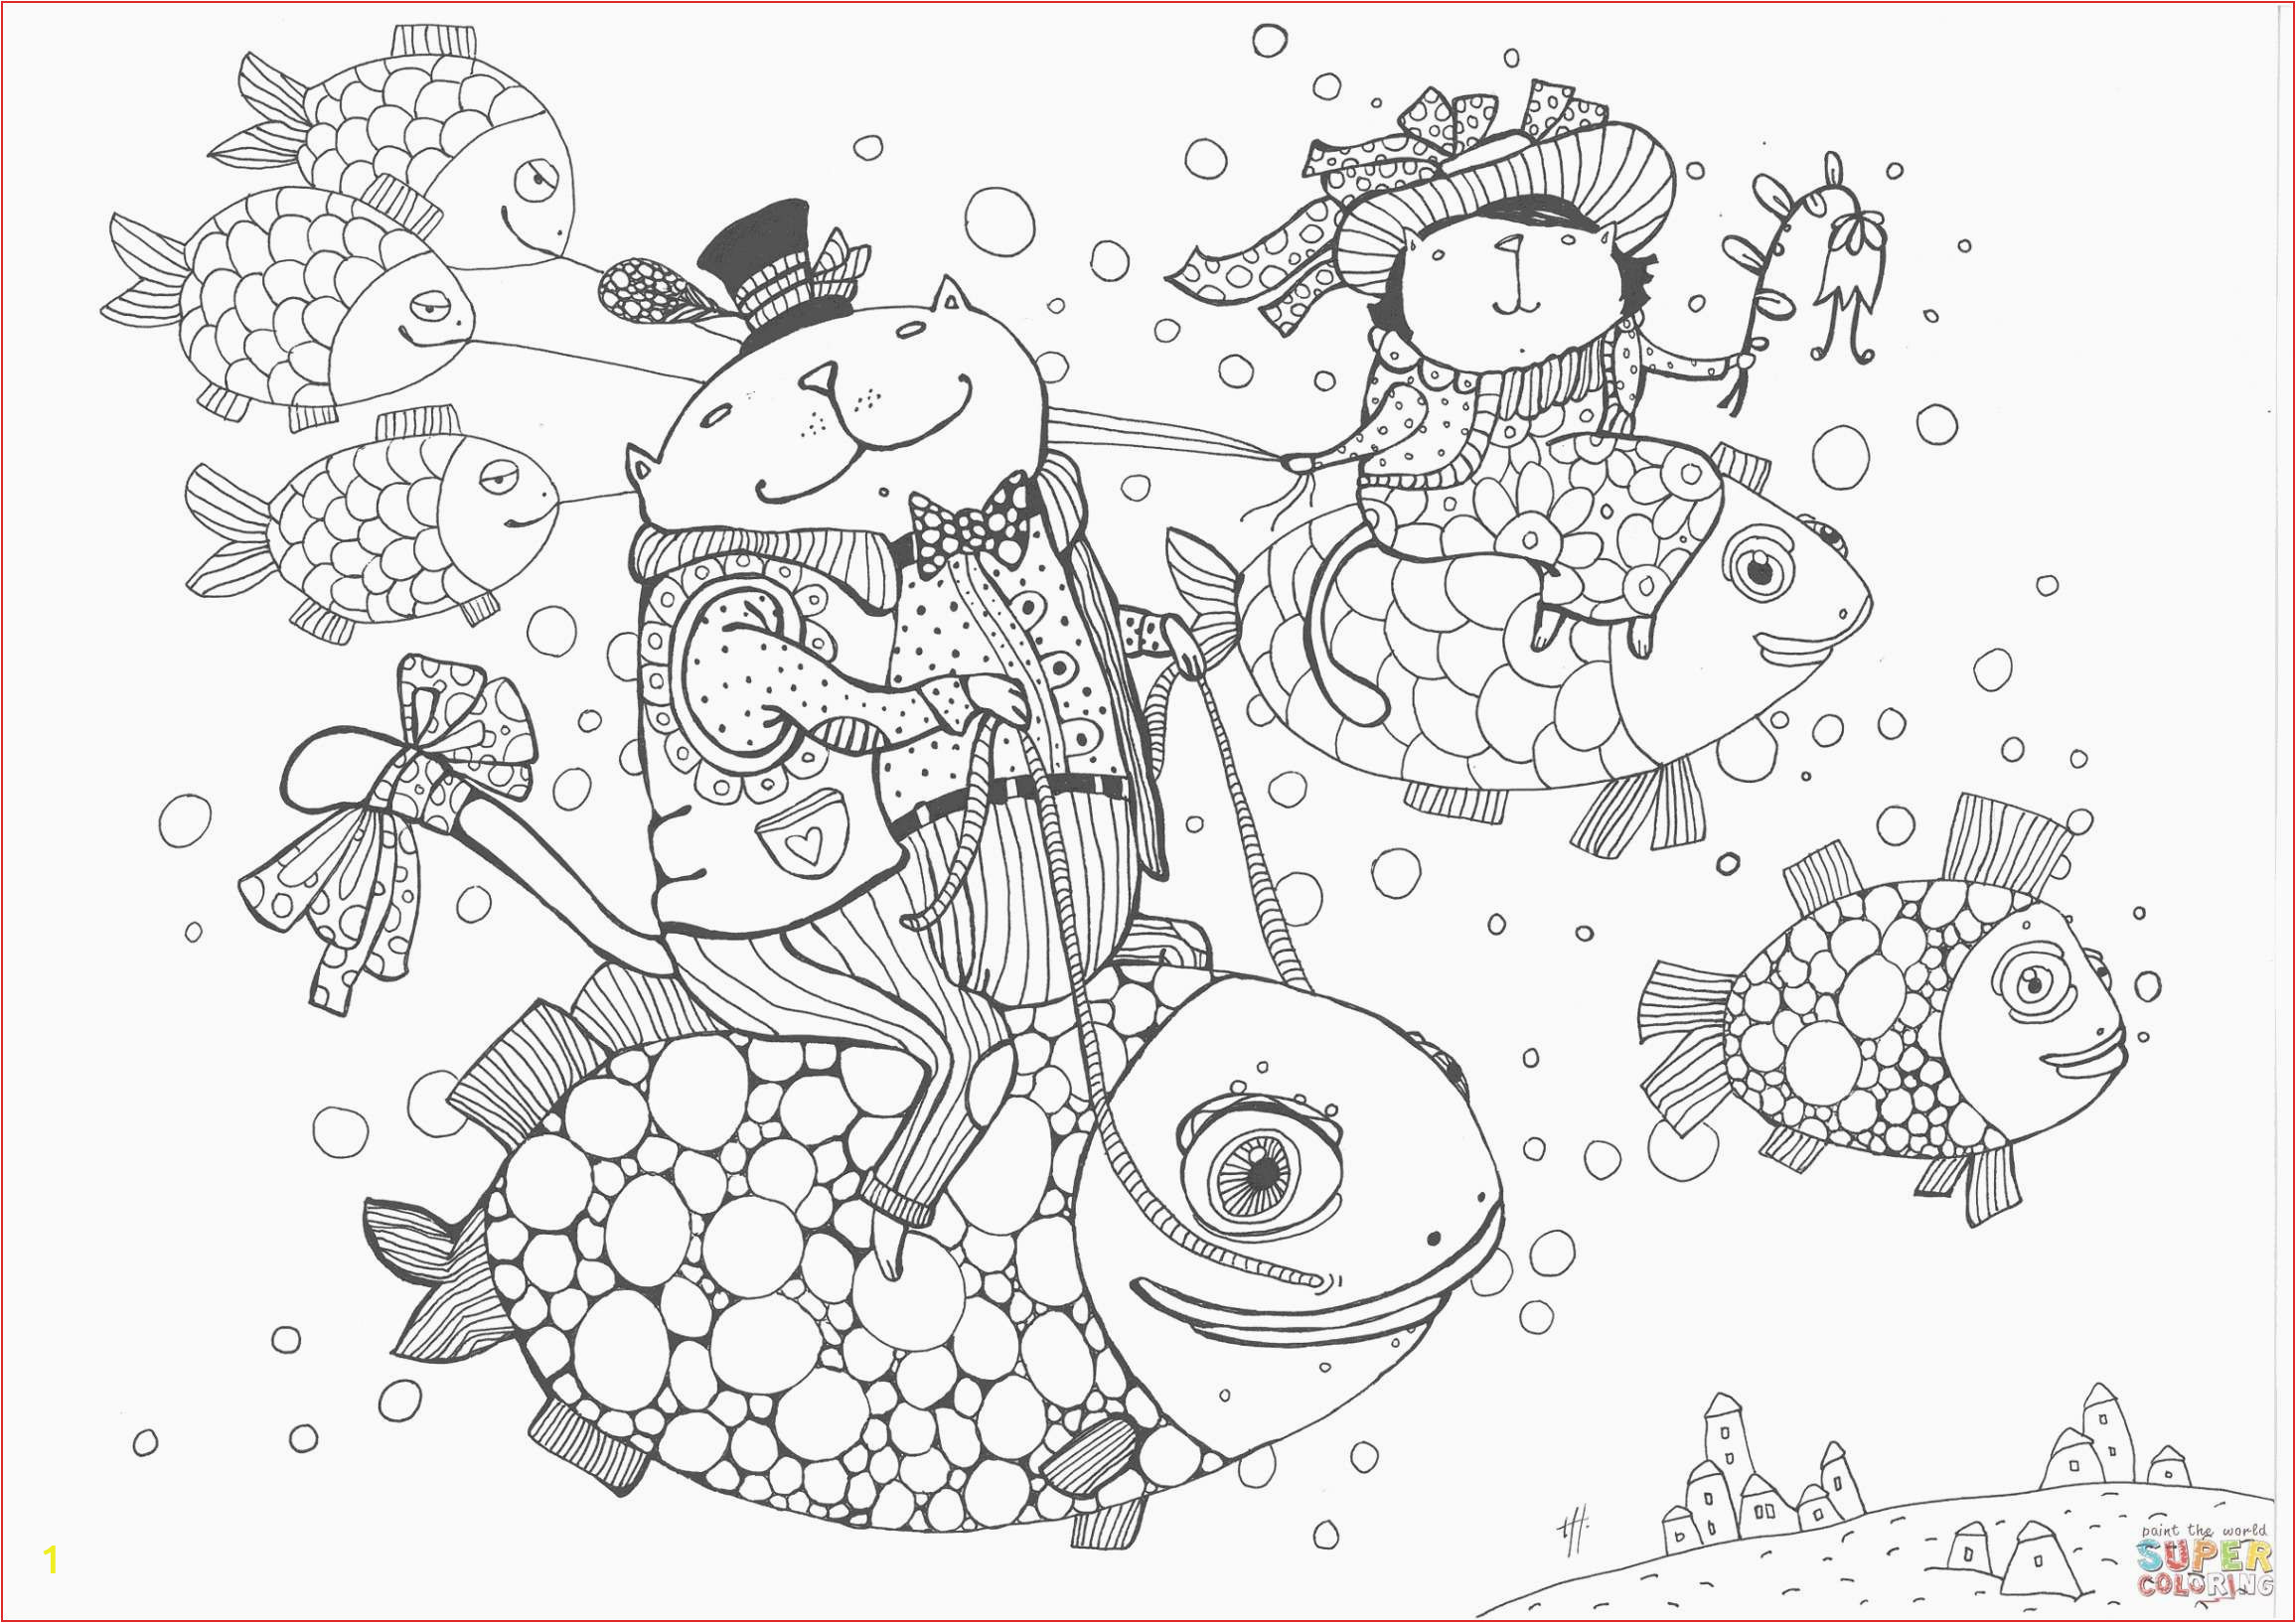 christmas mandala coloring book giant books for adults bible momjunction pages zen doll colouring bulk adult themed swear word sheets spring bonnie amazing toddlers fun giraffe